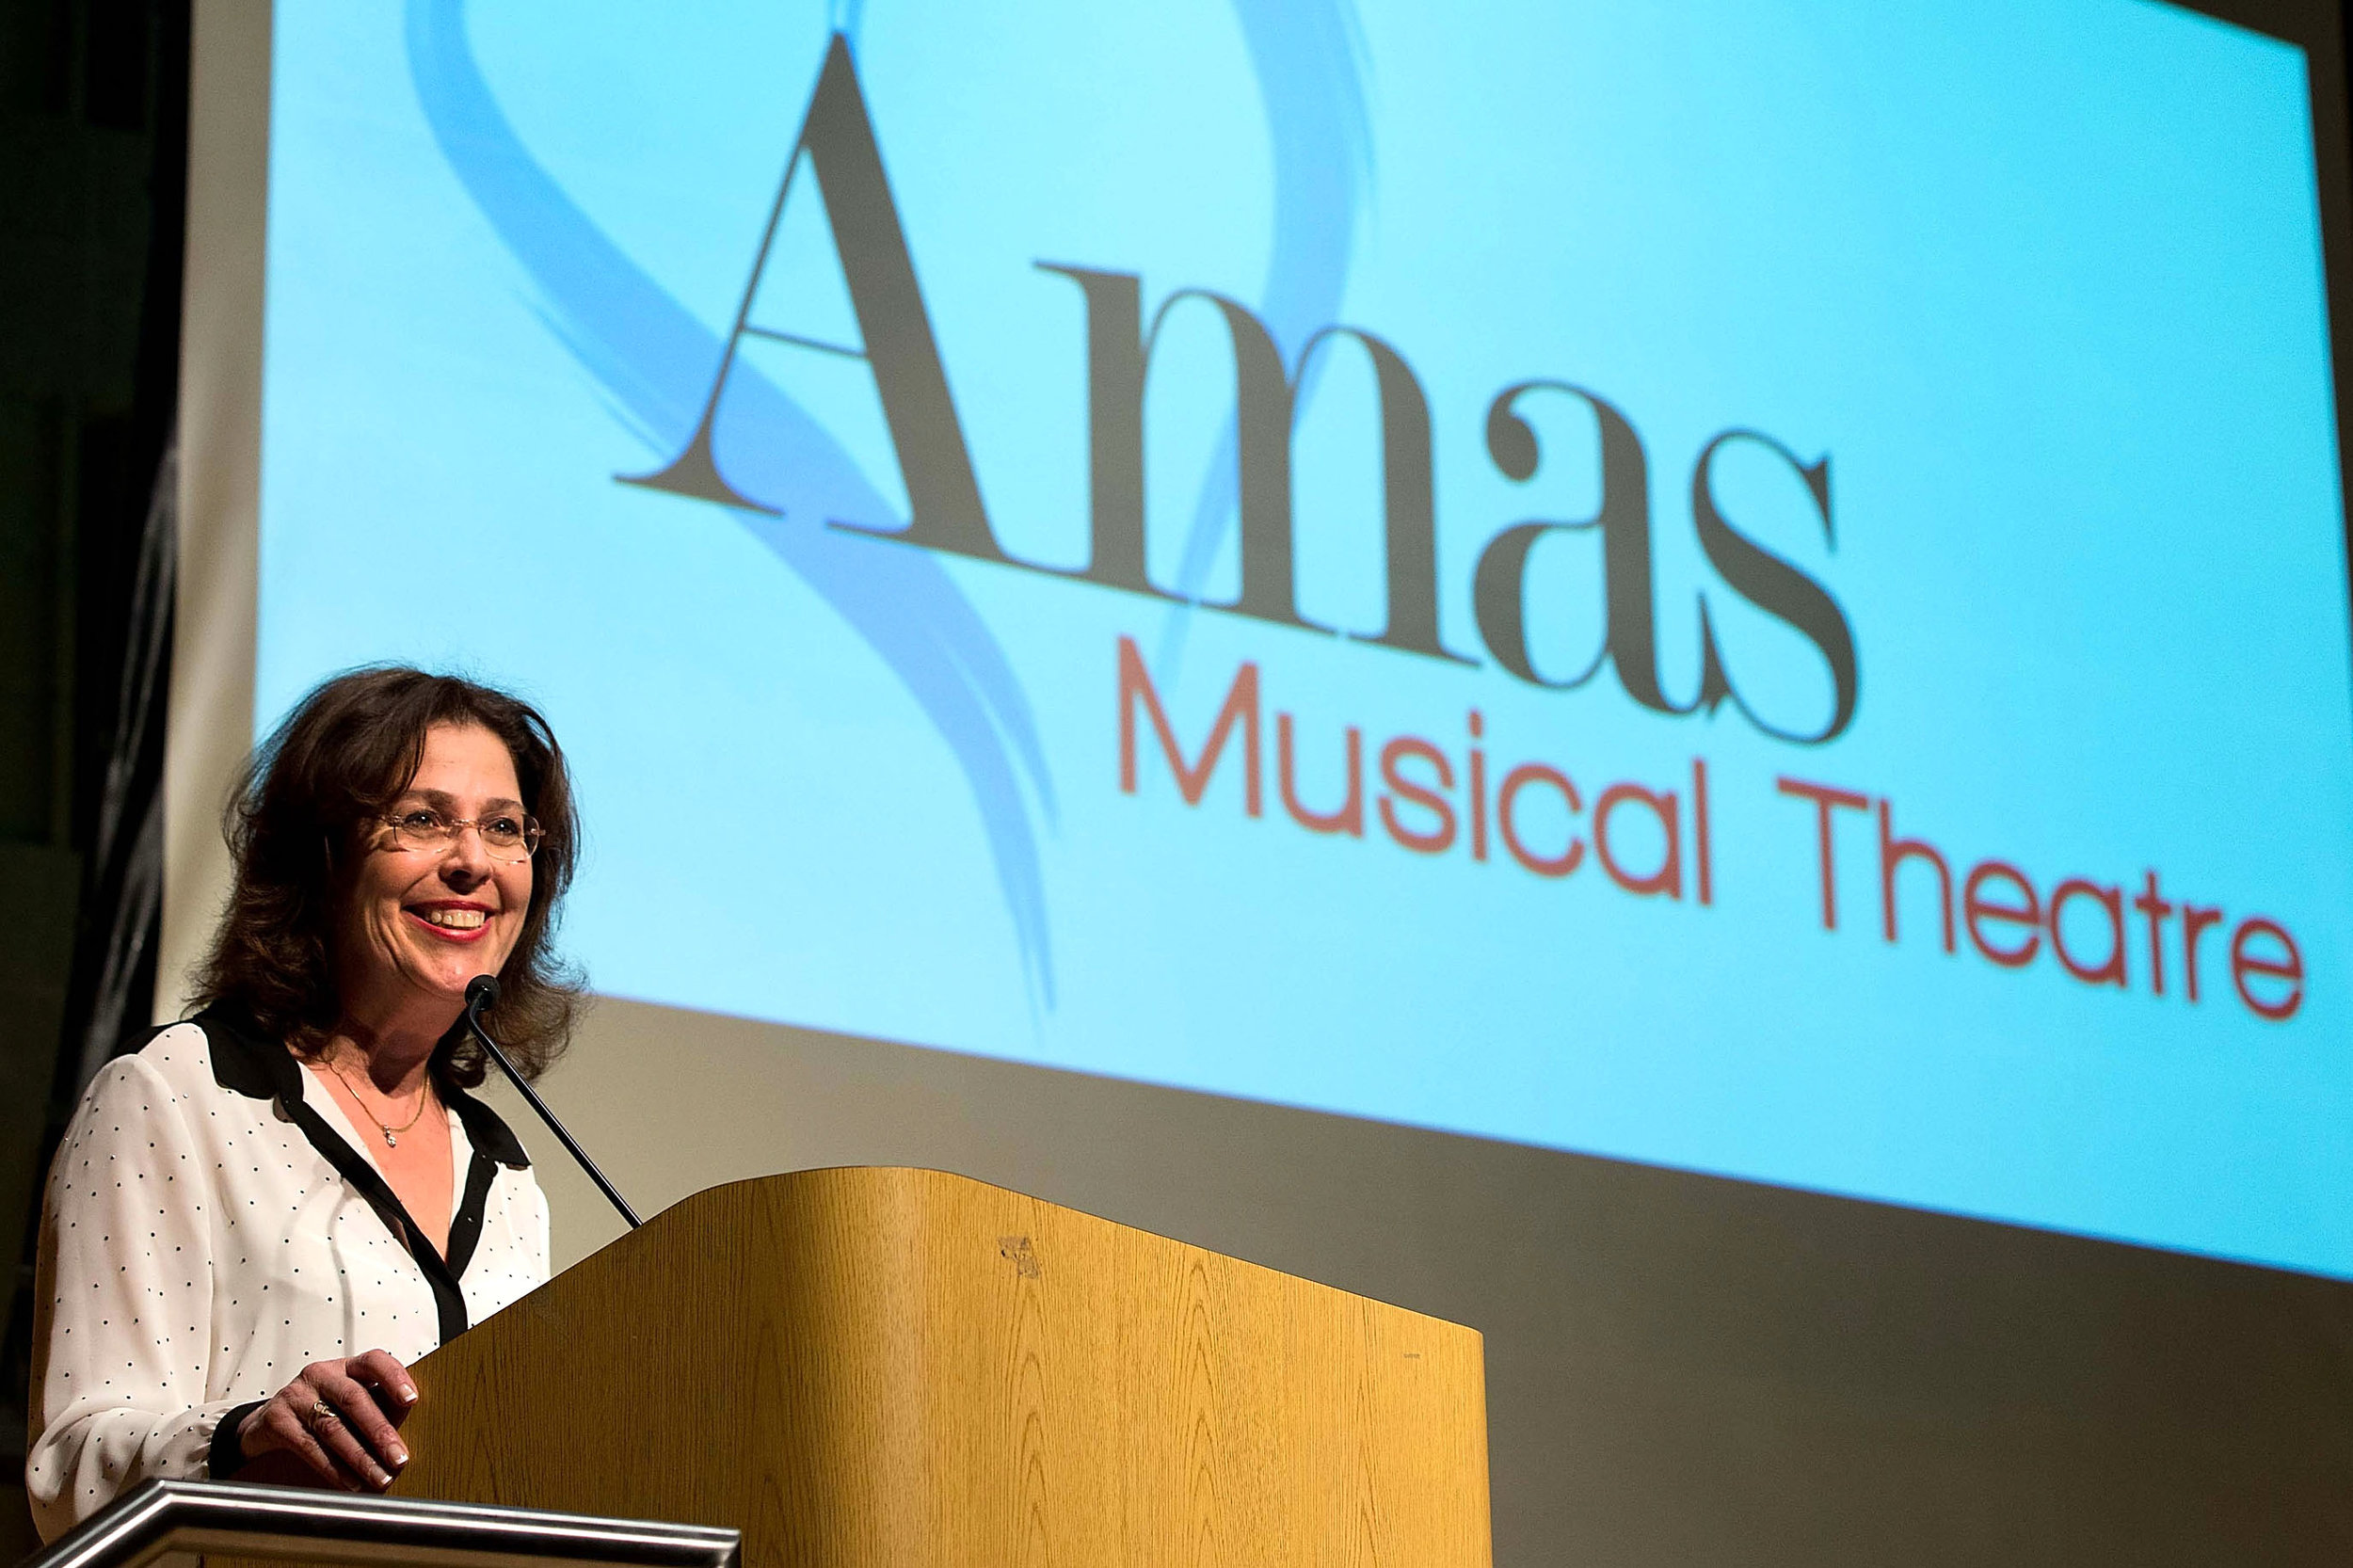 Amas Musical Theater at Baruch College